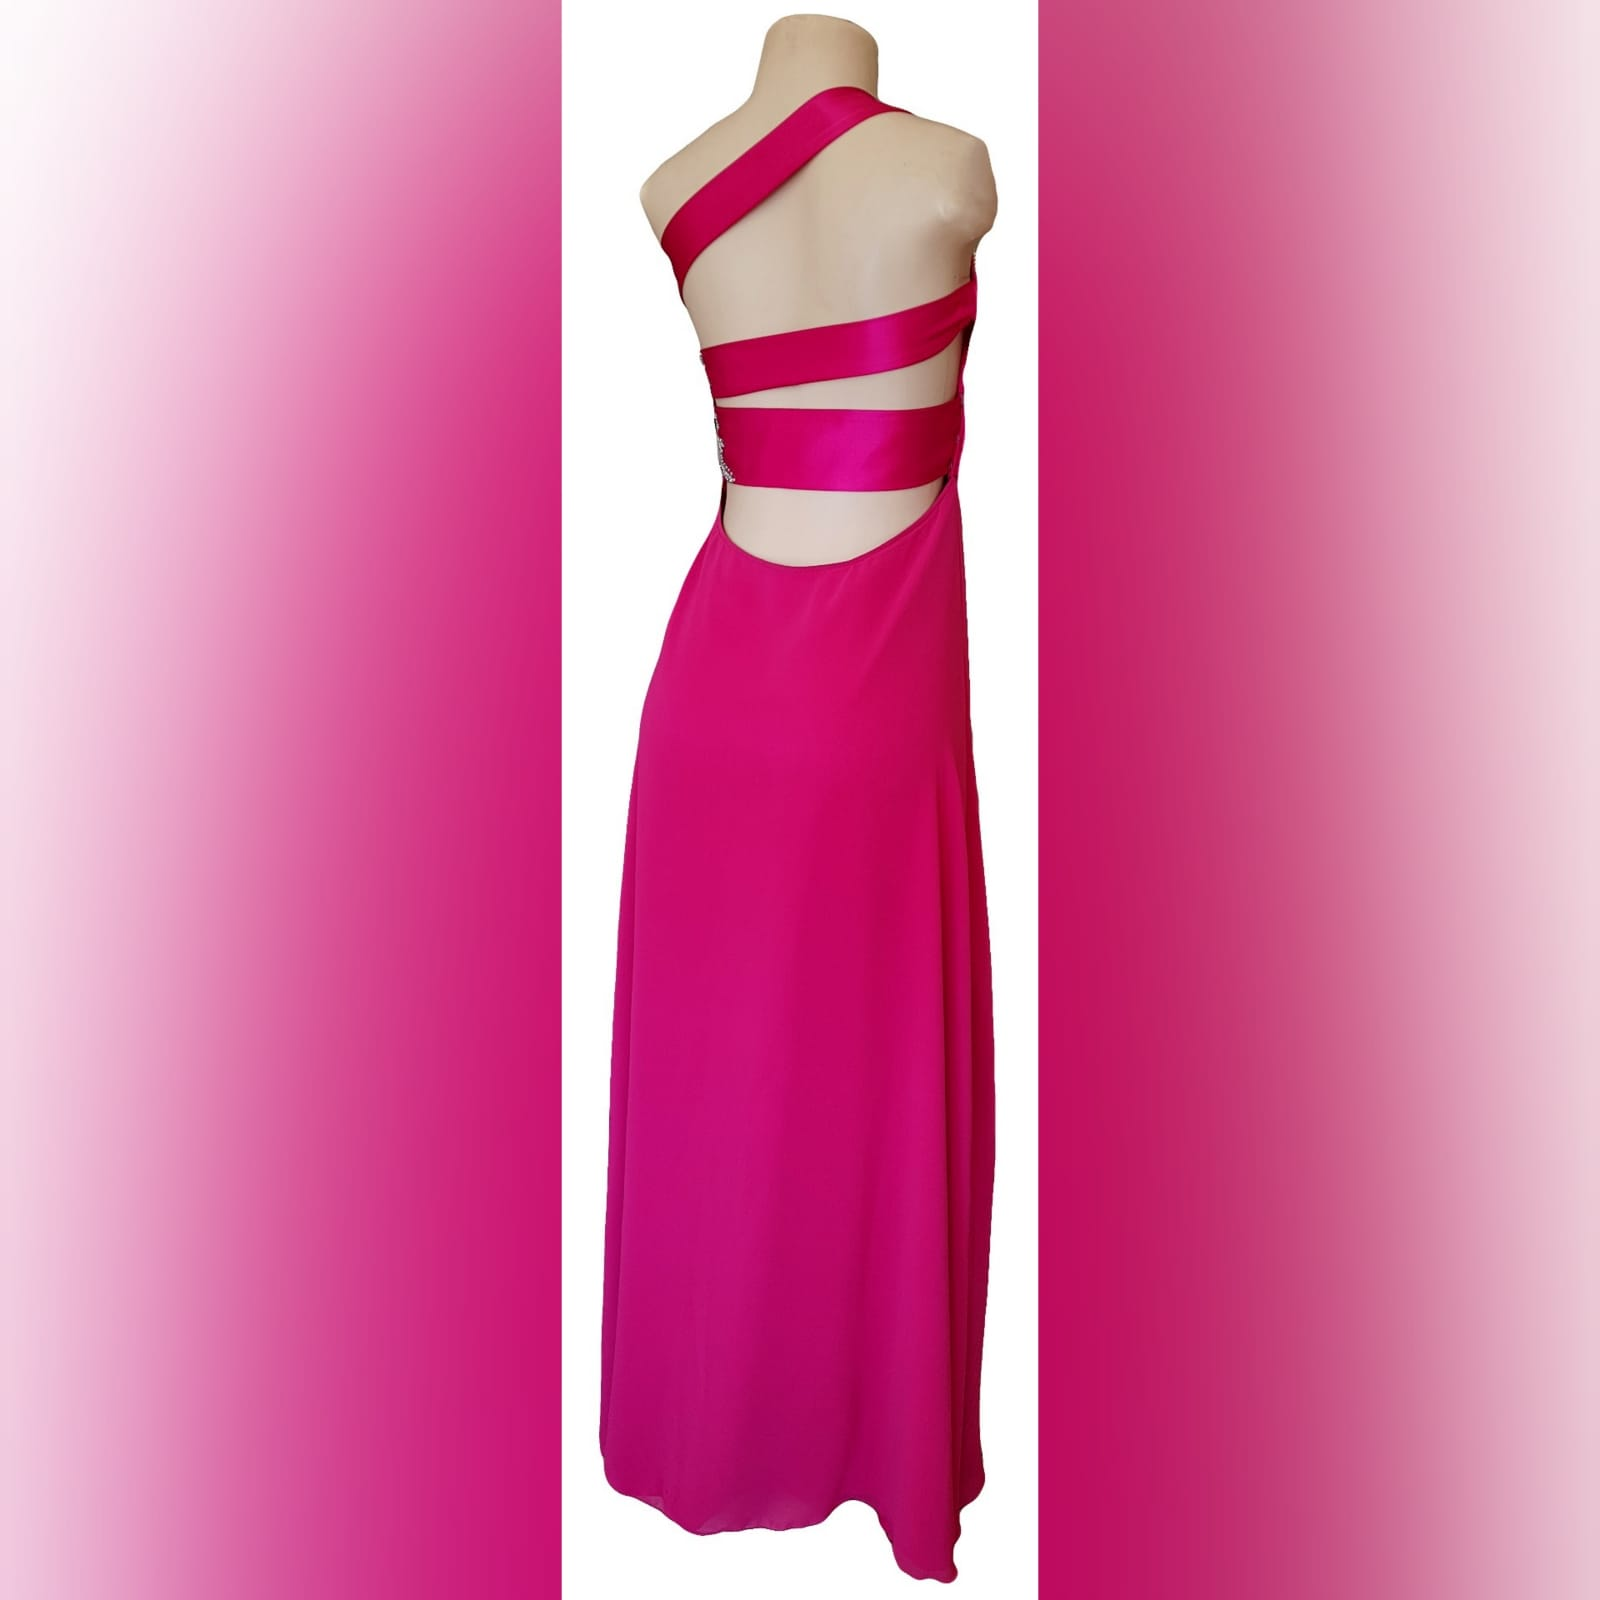 Cerise pink long flowy sexy evening dress 3 cerise pink long flowy sexy evening dress with a slit. One shoulder with a sweetheart neckline. Open back detailed with wide straps. Pleated belt. Dress beaded with silver.